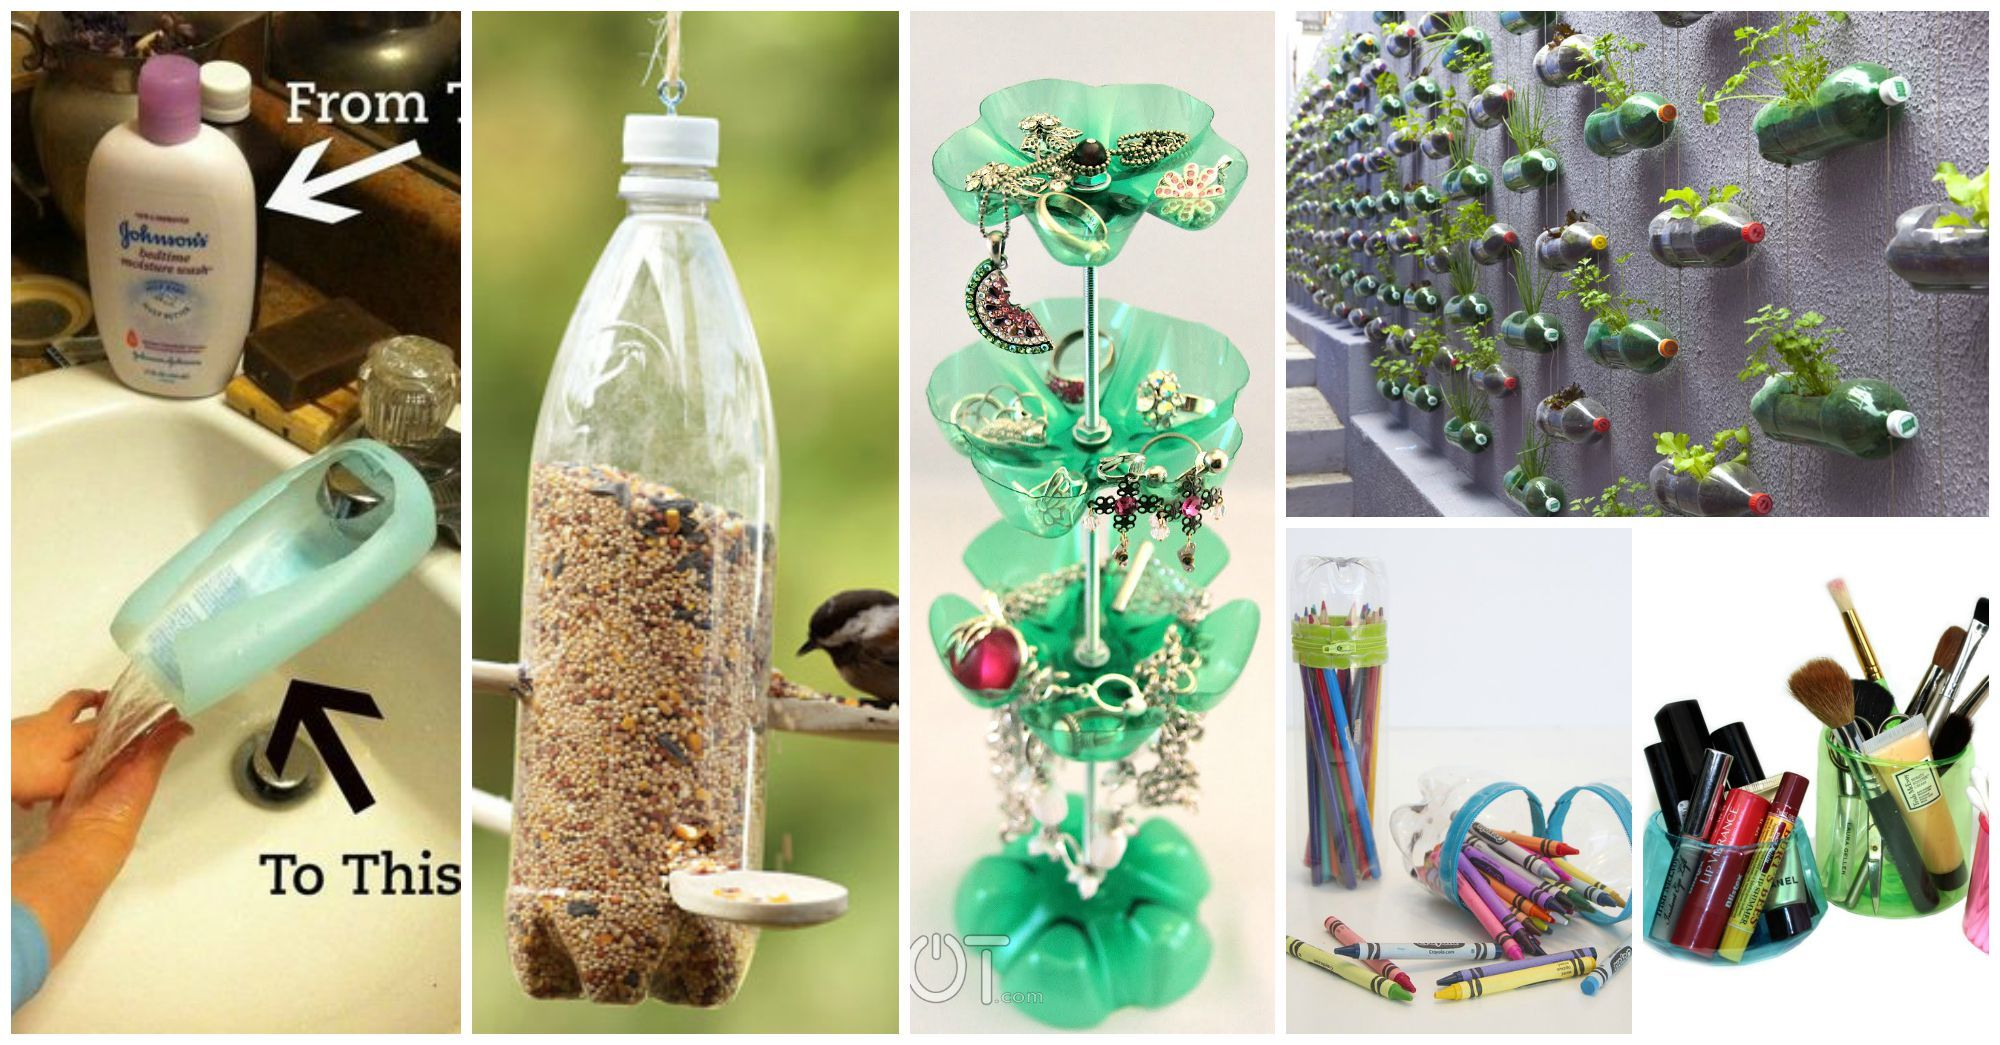 15 Awesome Ways to Reuse Plastic Bottles